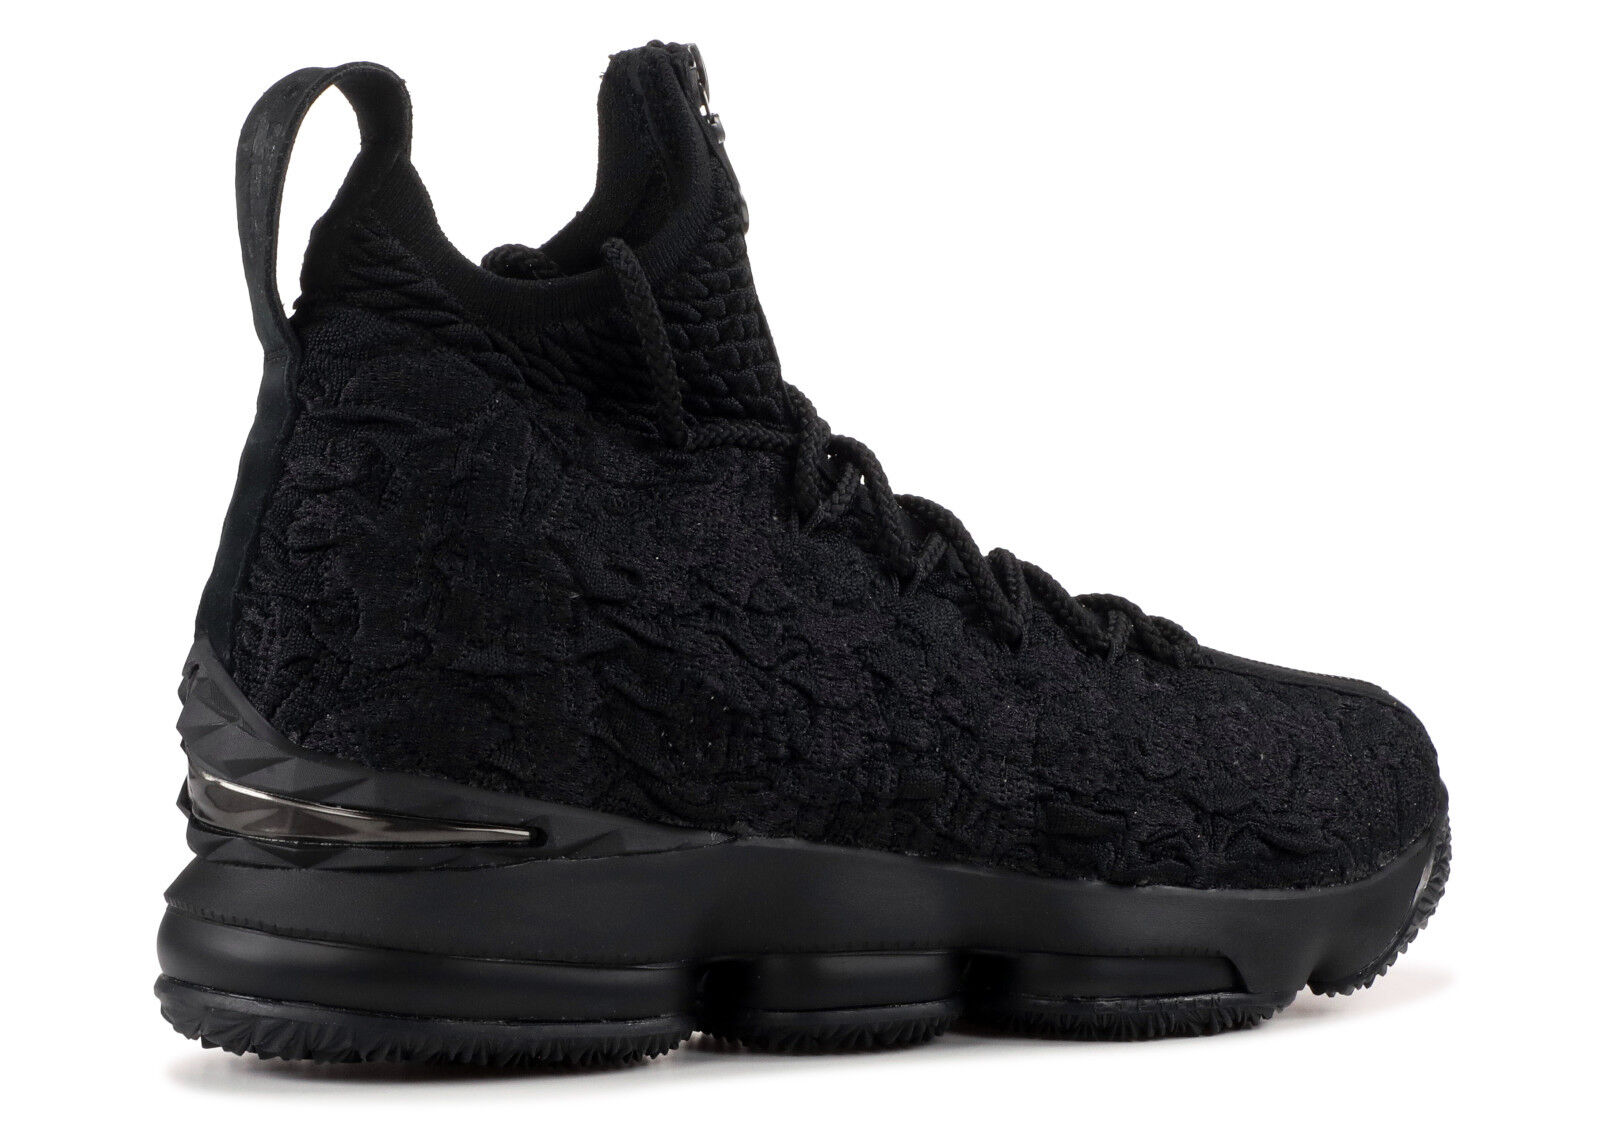 934281b0647d ... Nike LeBron 15 15 15 XV Kith Ronnie Fieg Perf Suit of Armor Black Size  15 ...